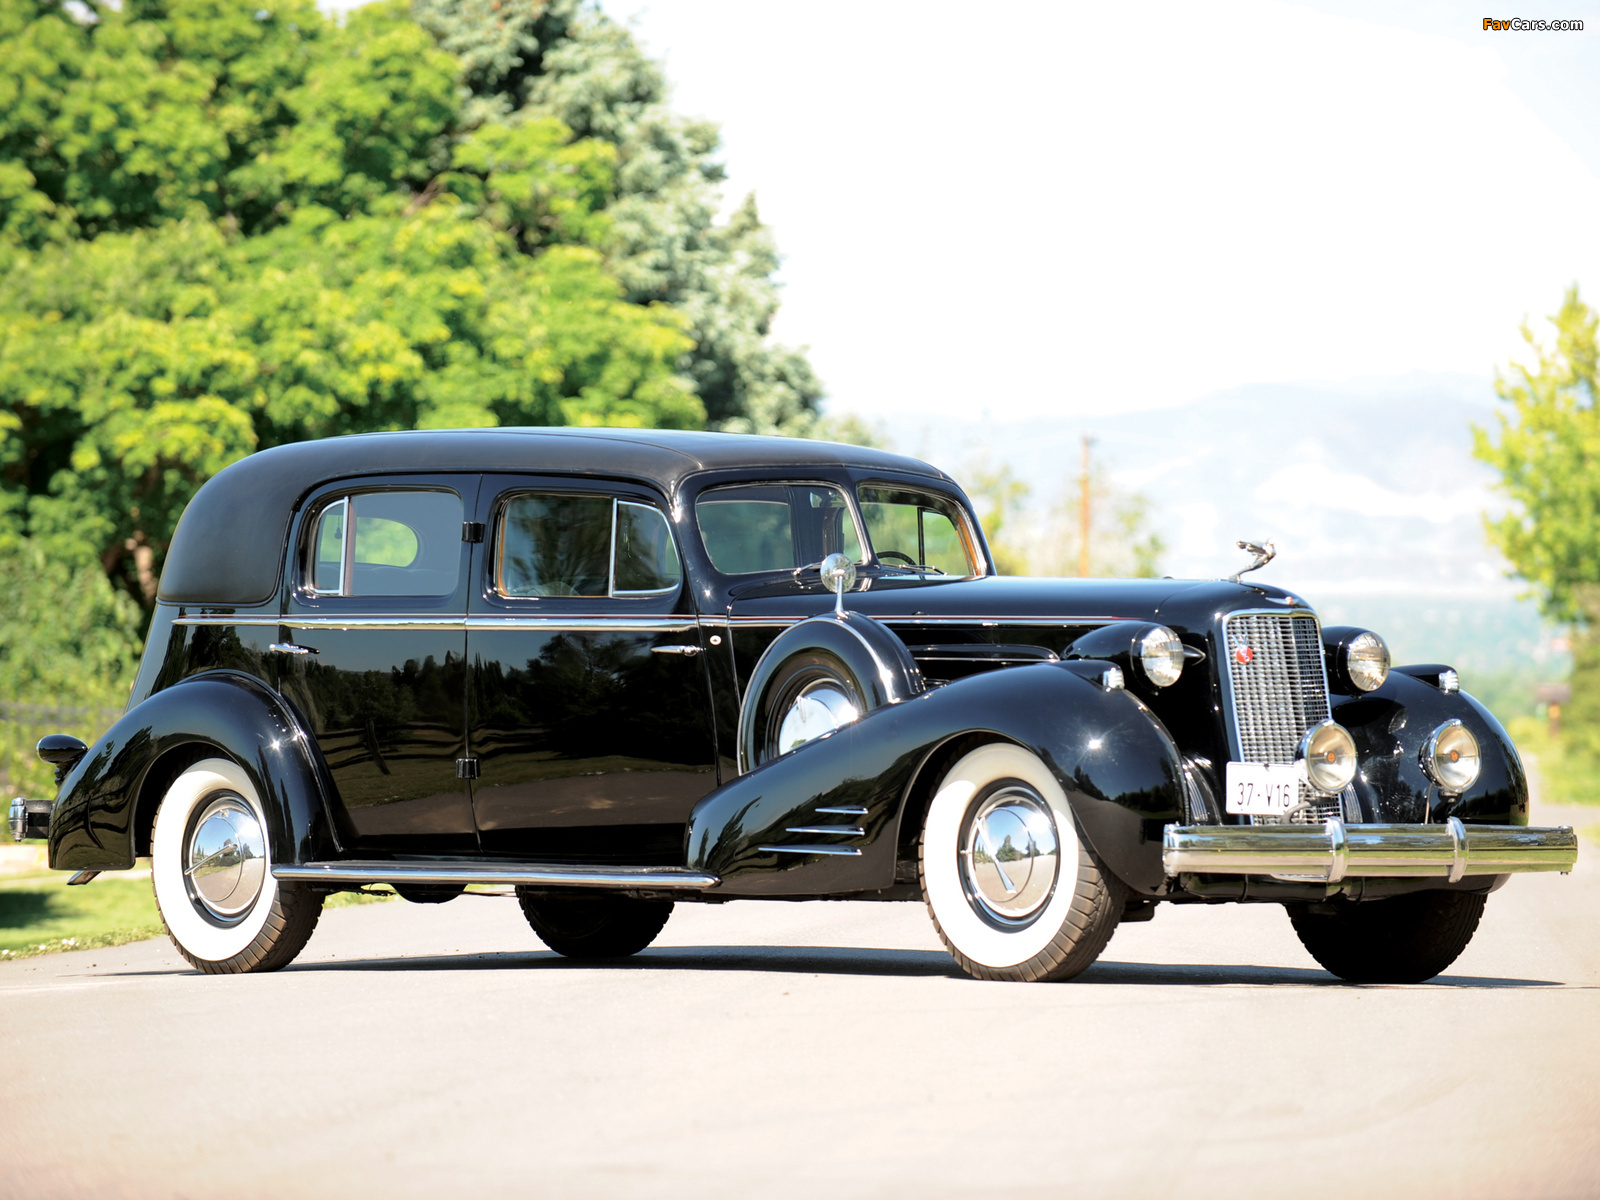 Cadillac V16 Series 90 Custom Imperial Cabriolet by Fleetwood 1937 images (1600 x 1200)